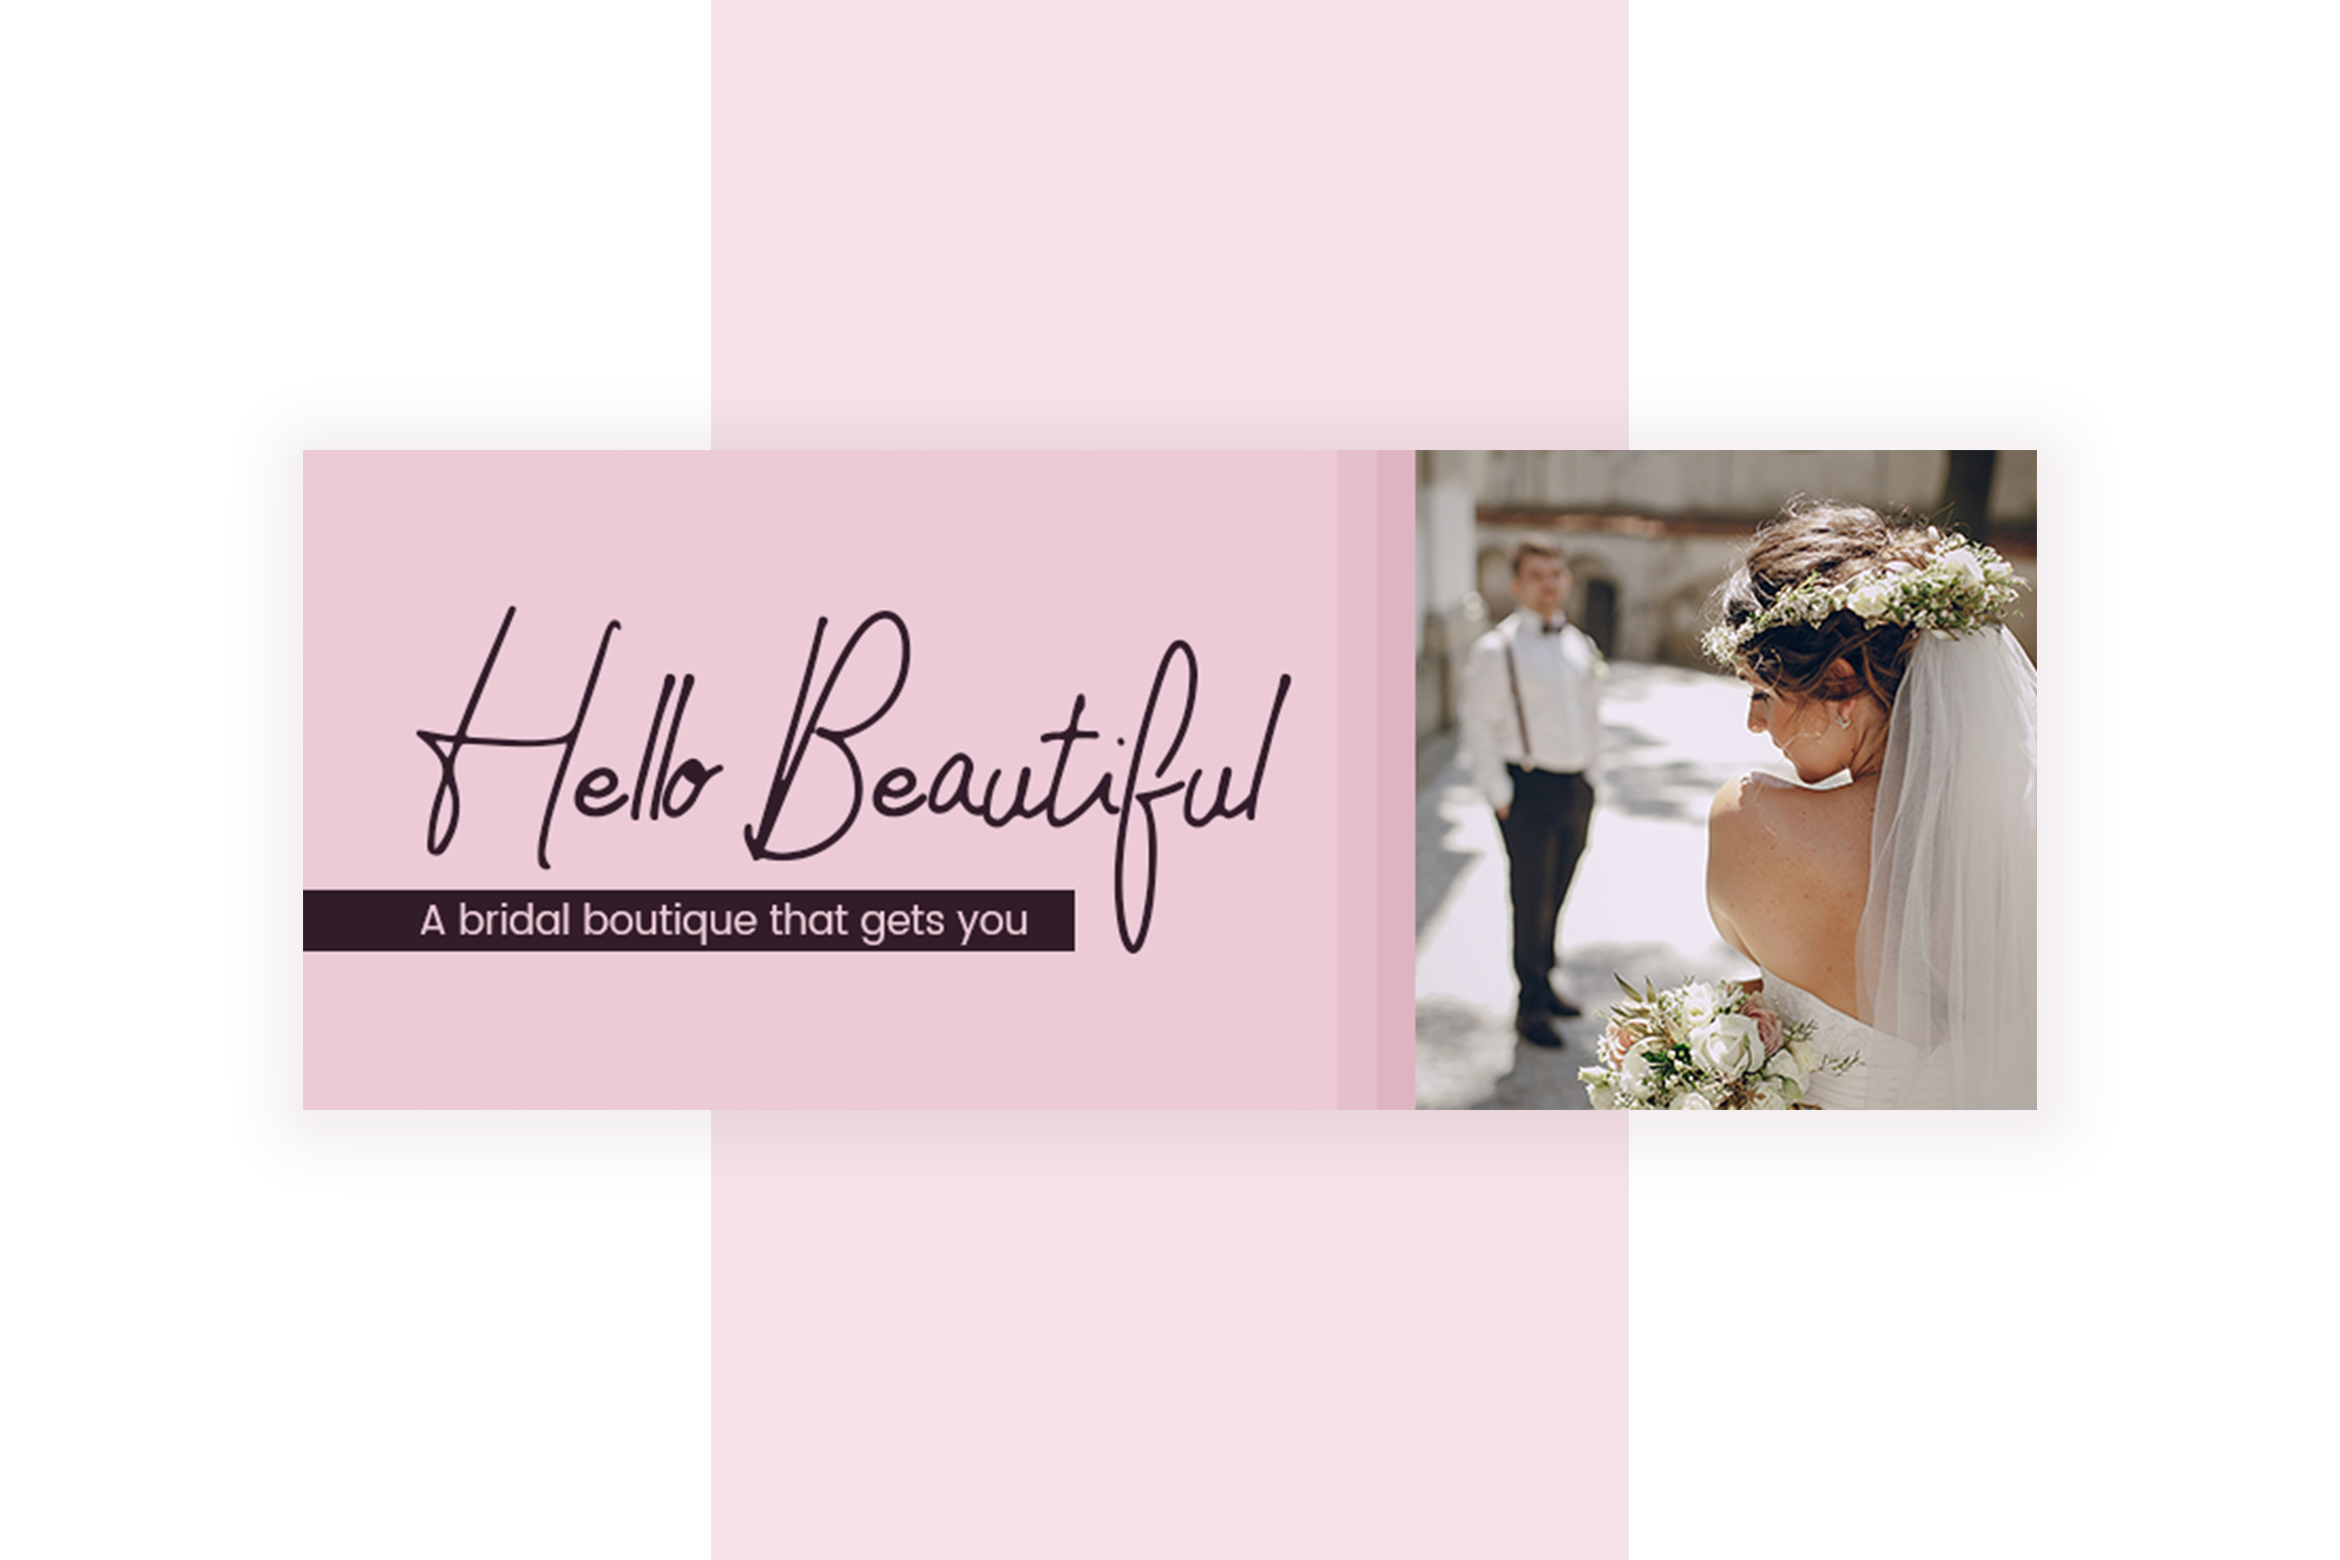 Beauty Service Facebook Cover Template example image 5